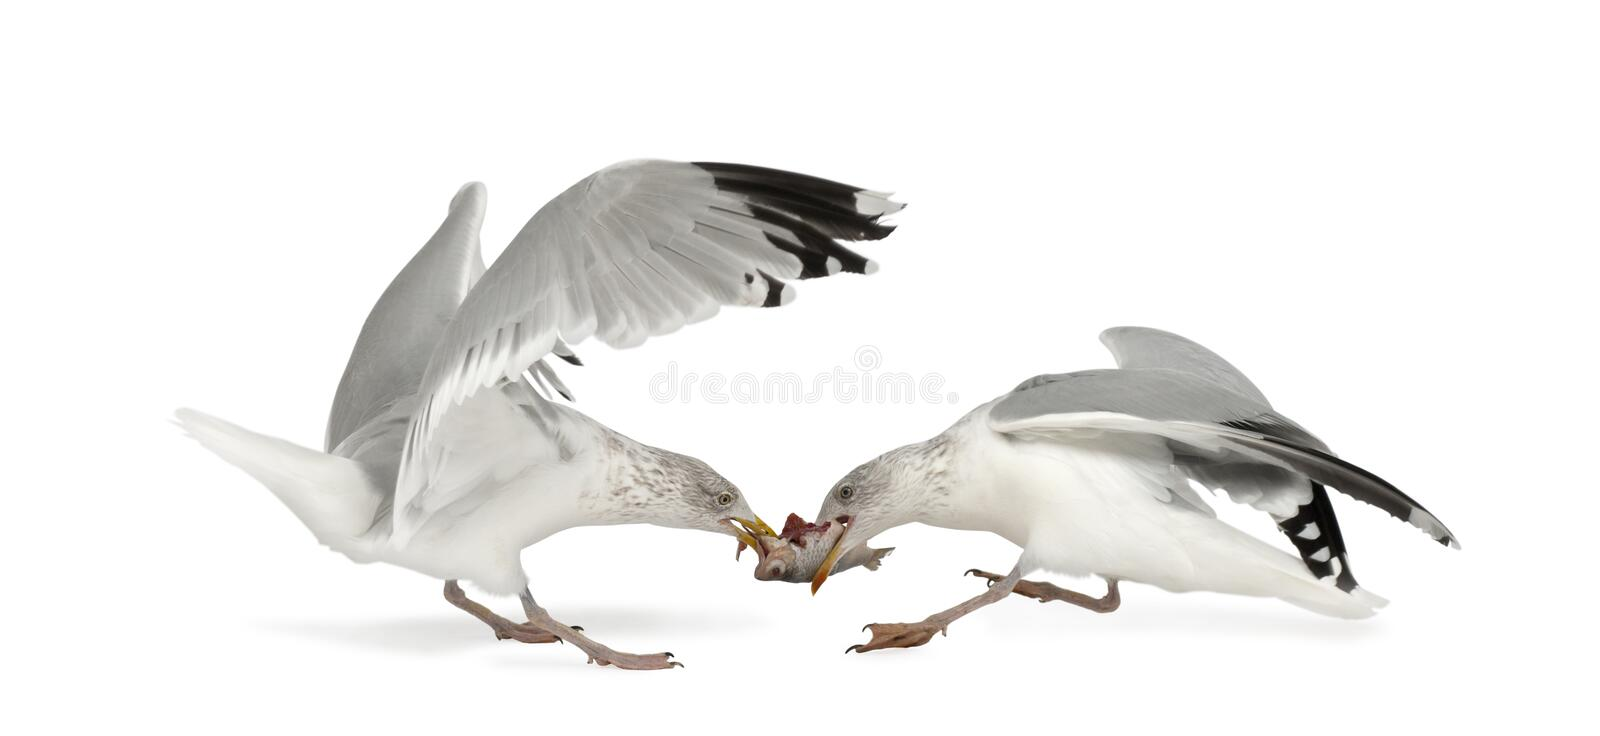 European Herring Gulls, Larus argentatus. 4 years old, fighting over fish flying against white background royalty free stock images